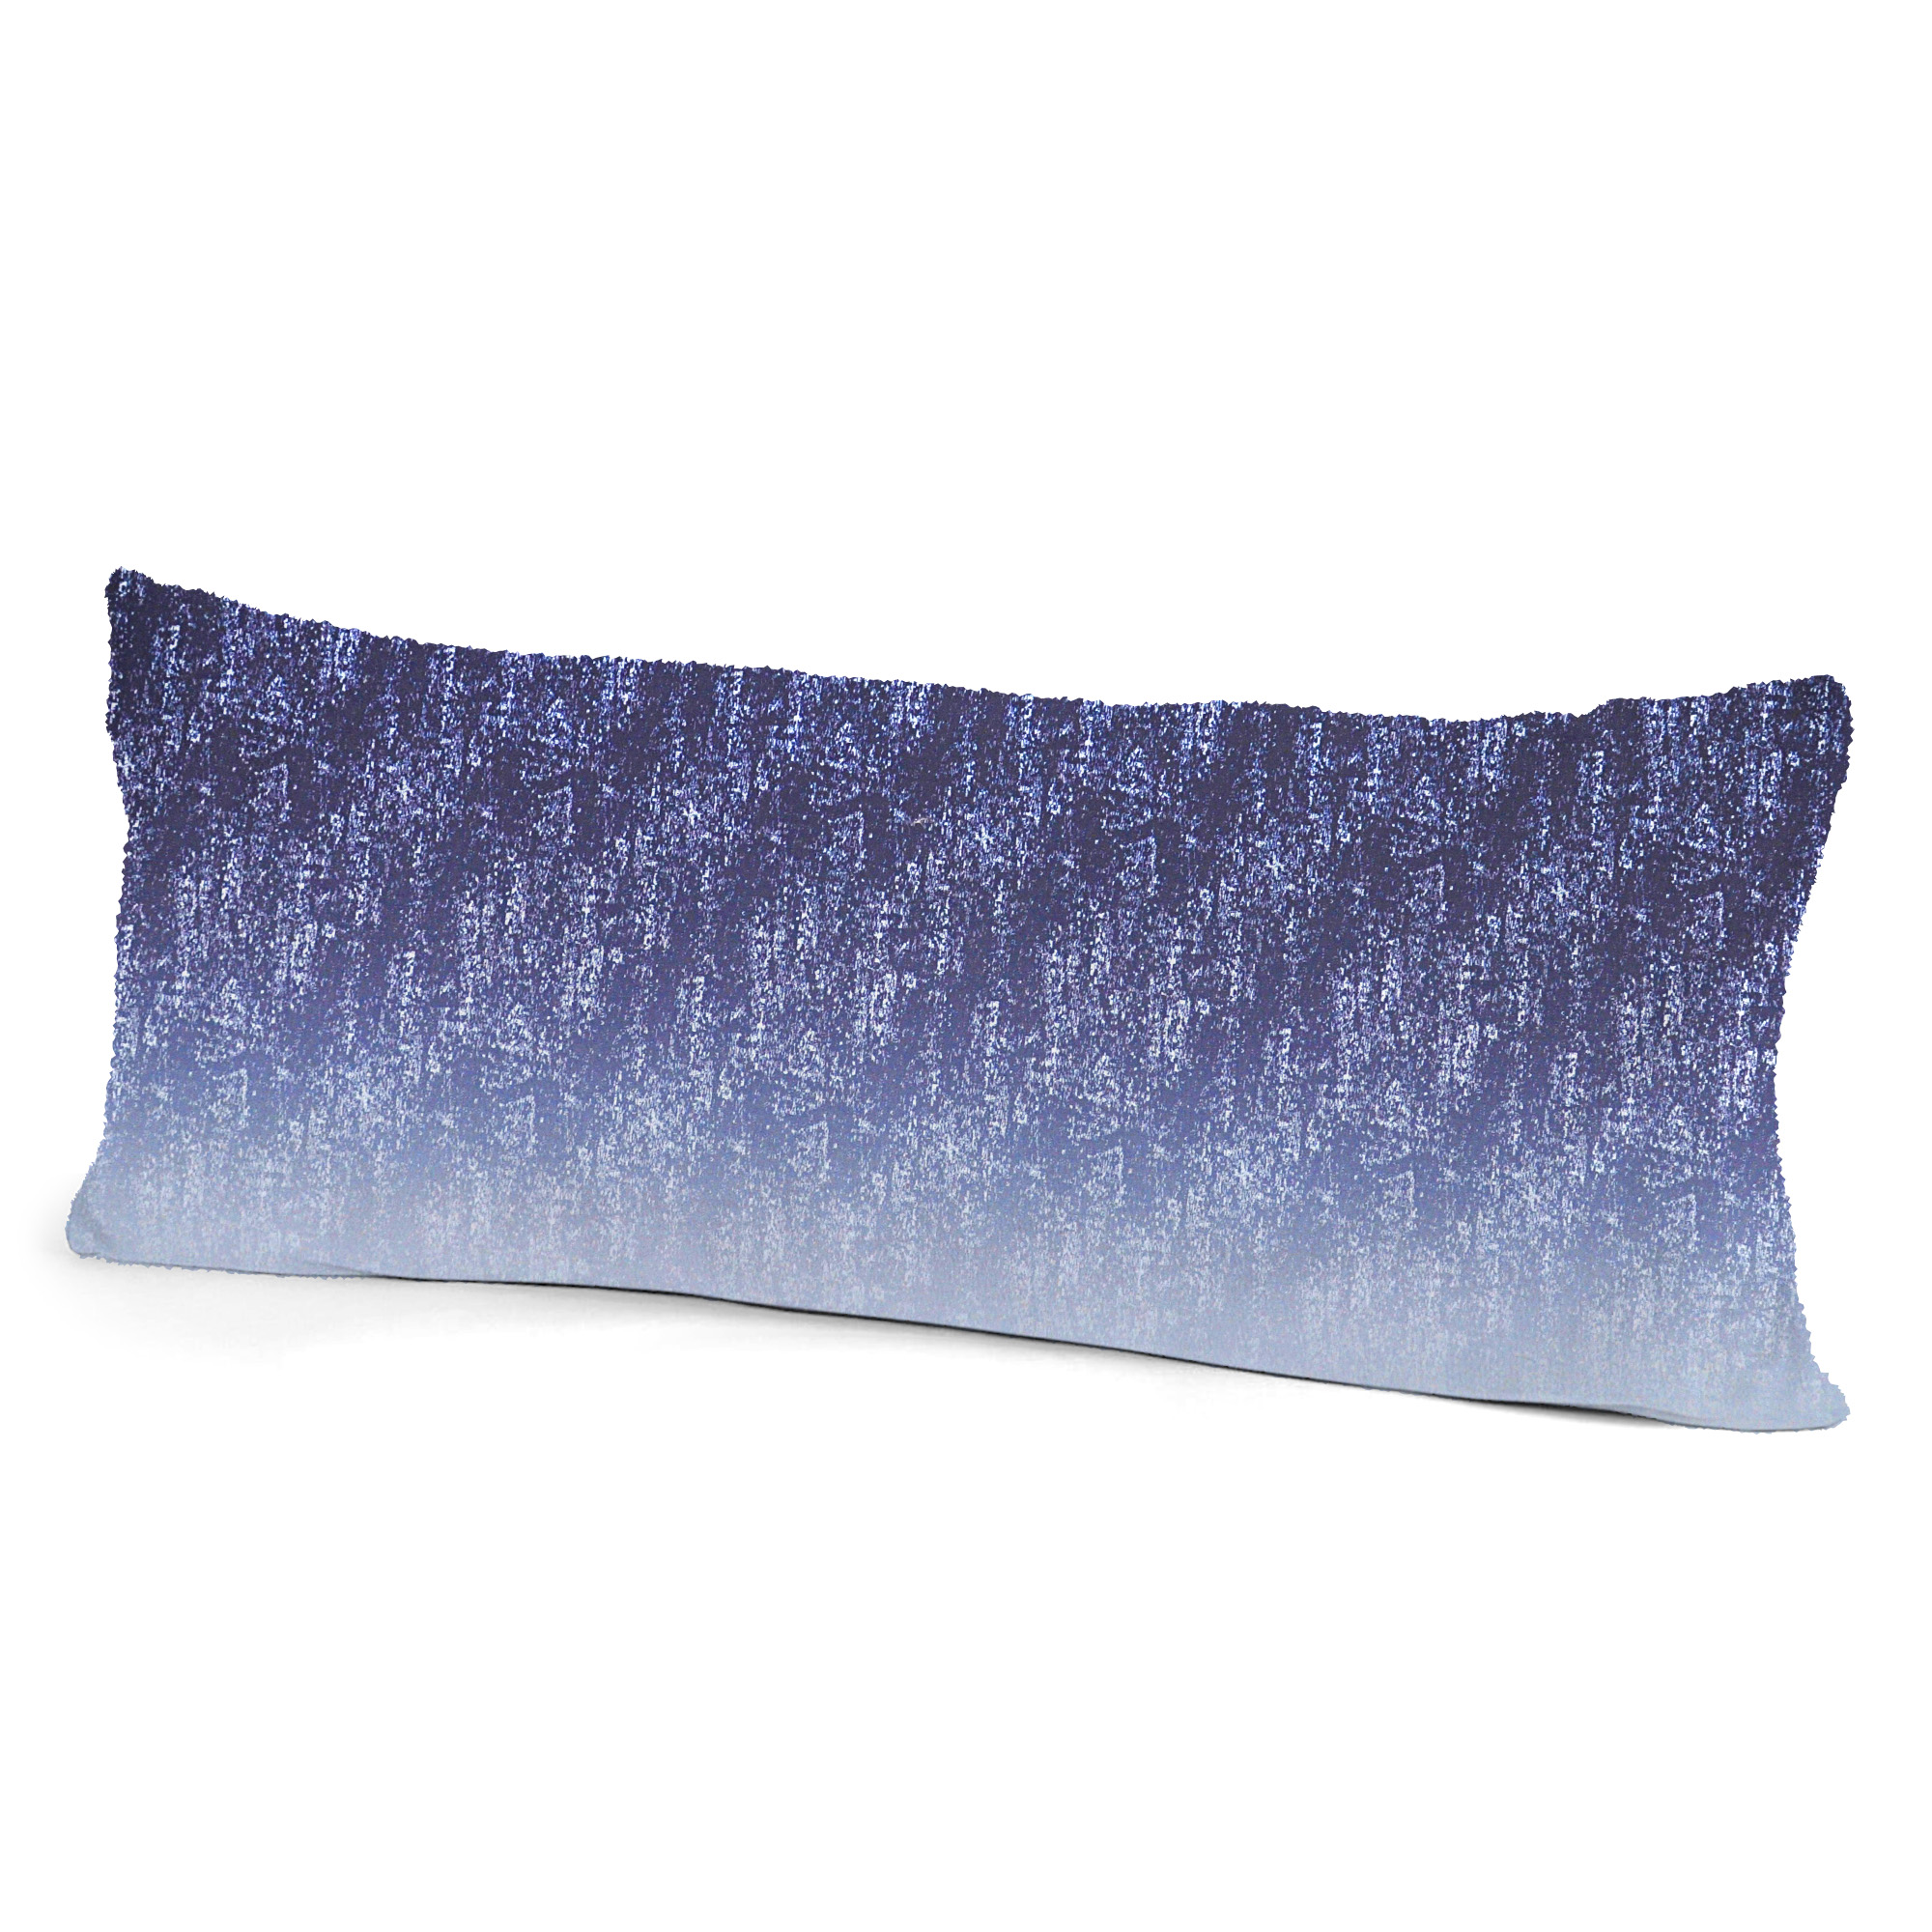 Colormate Acid Microfiber Body Pillow Cover Blue Indigo